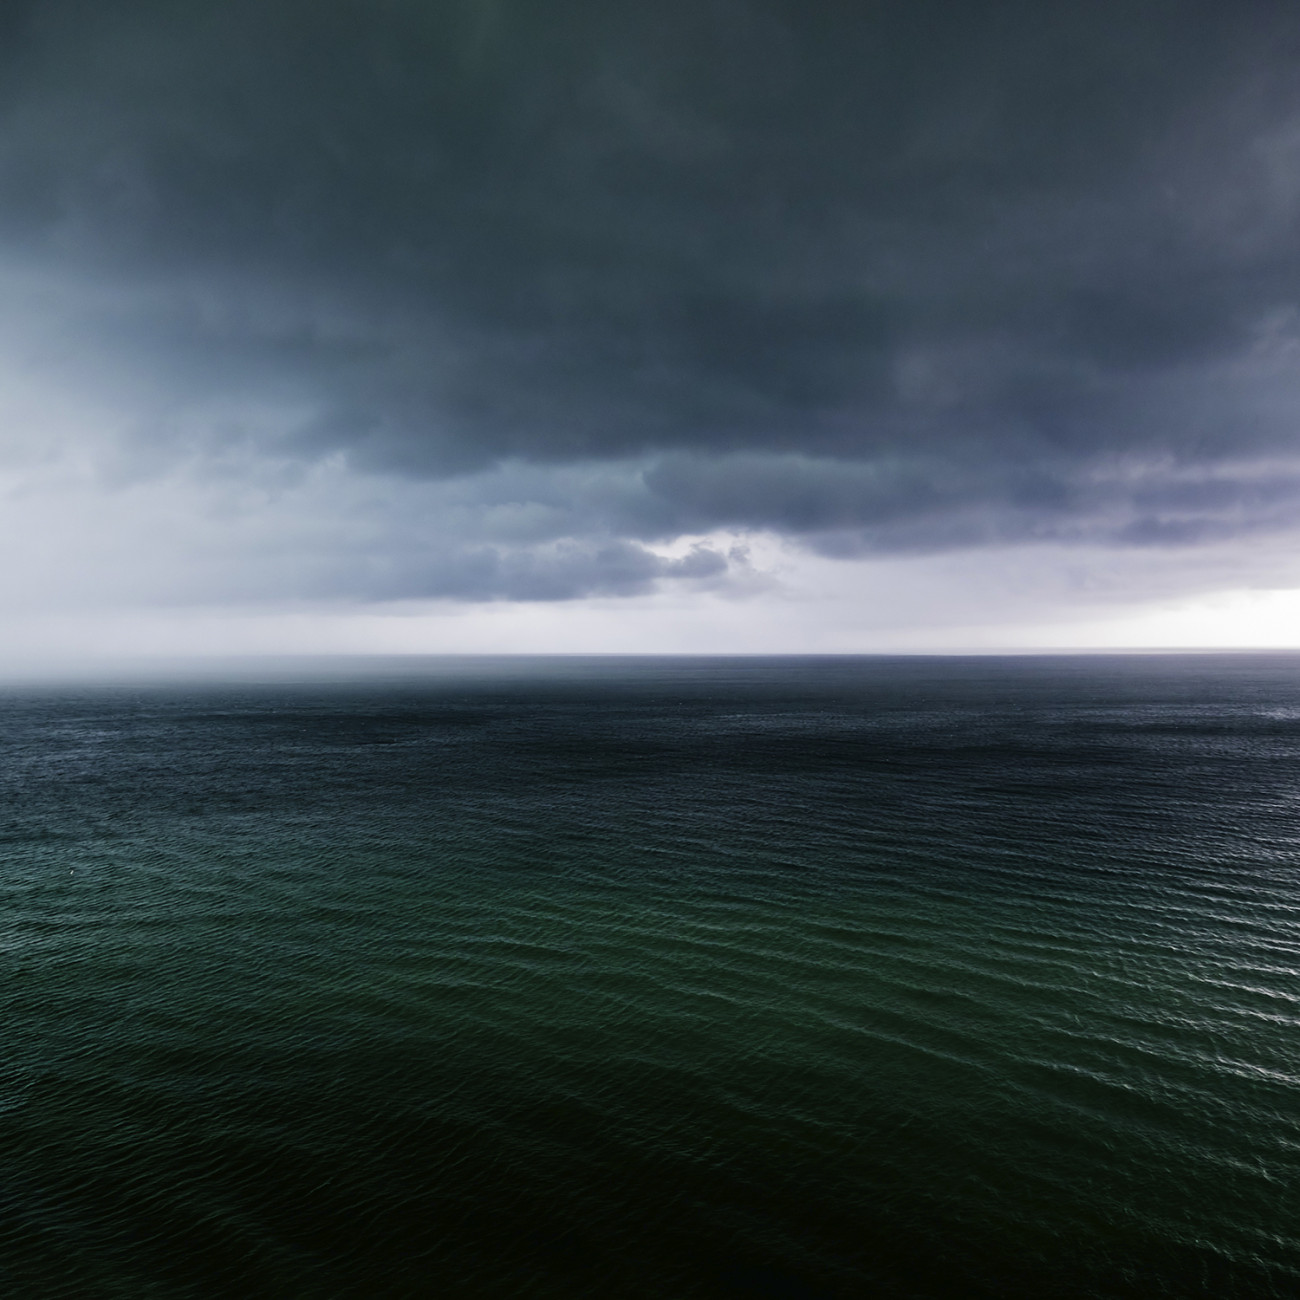 Before the storm, the Atlantic Ocean, 2015